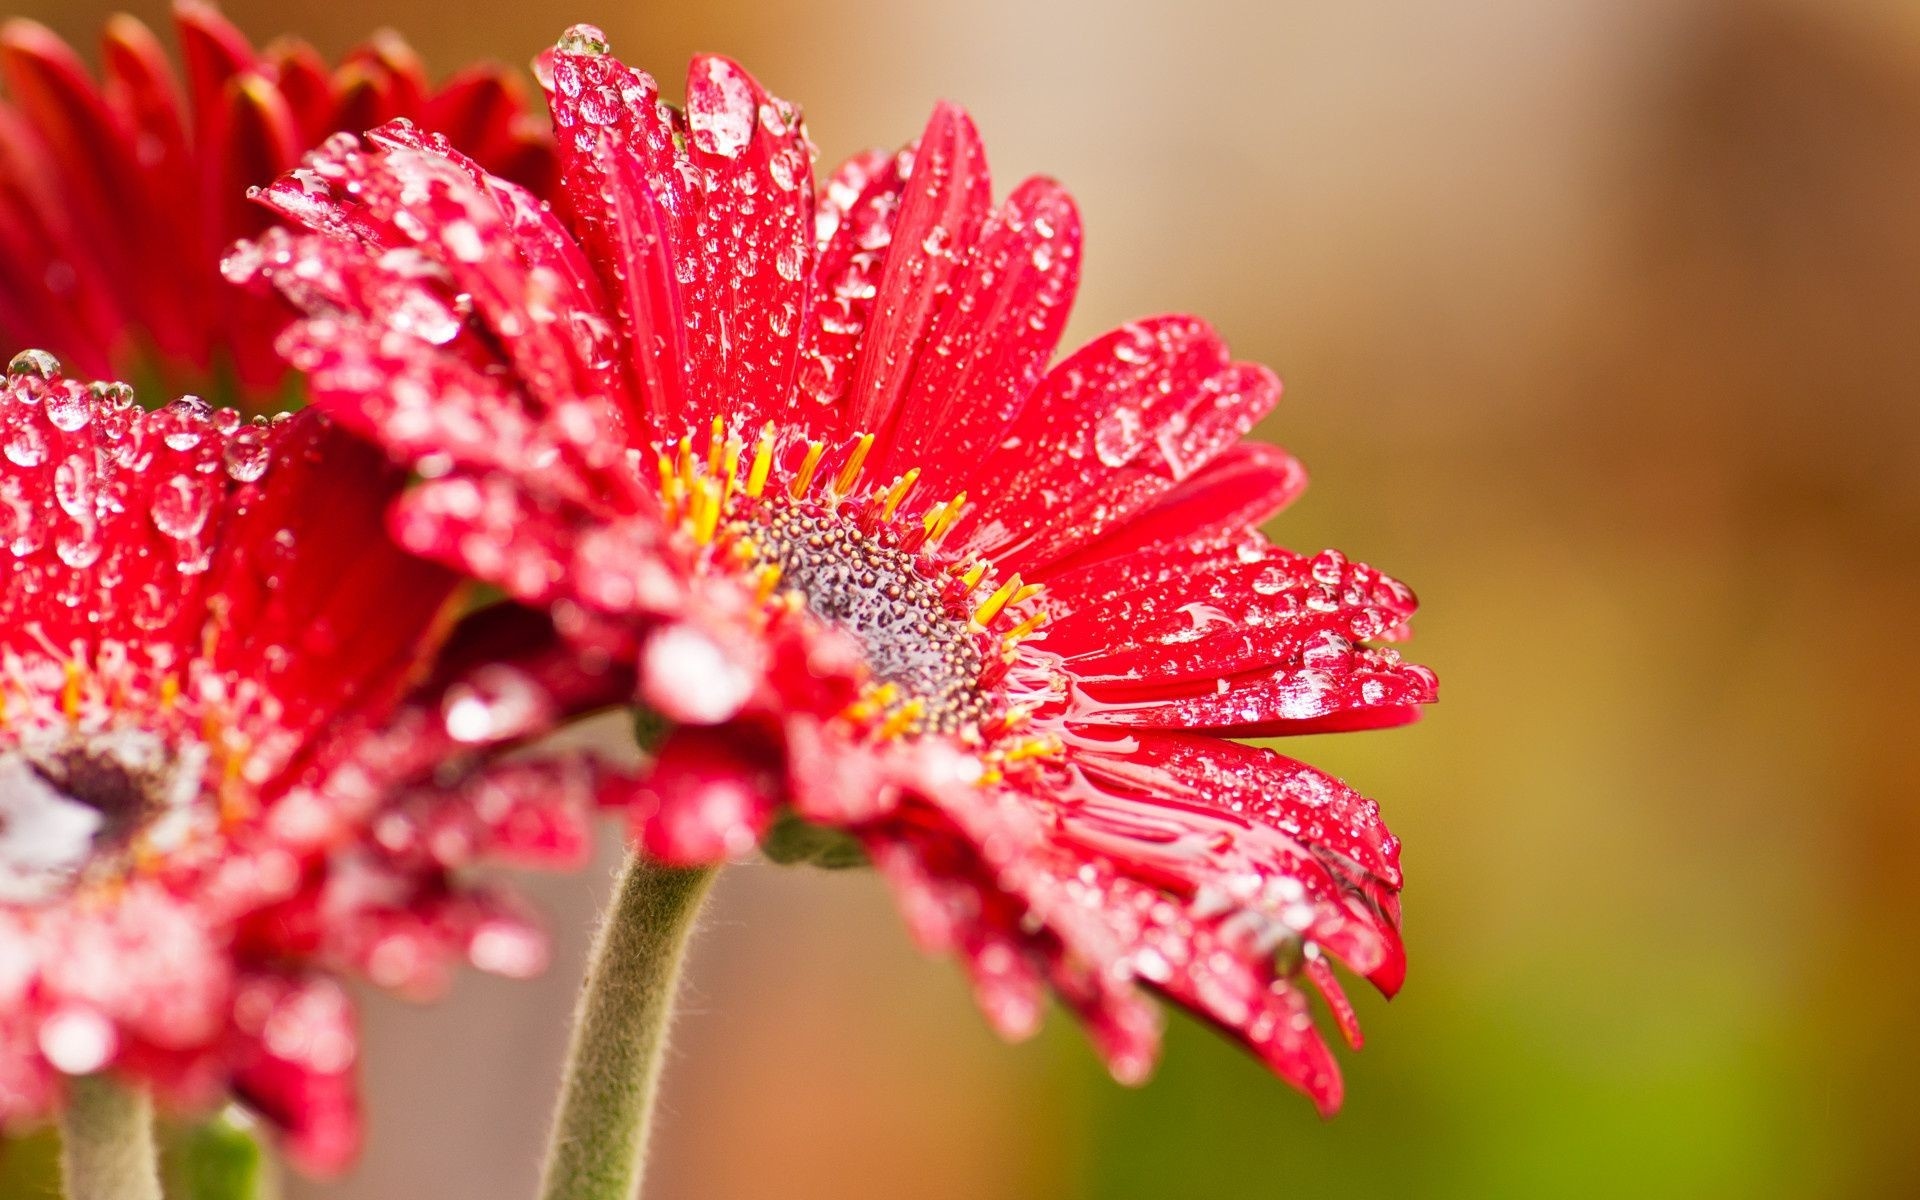 droplets and water nature flower flora summer leaf garden color bright floral petal close-up beautiful blooming growth